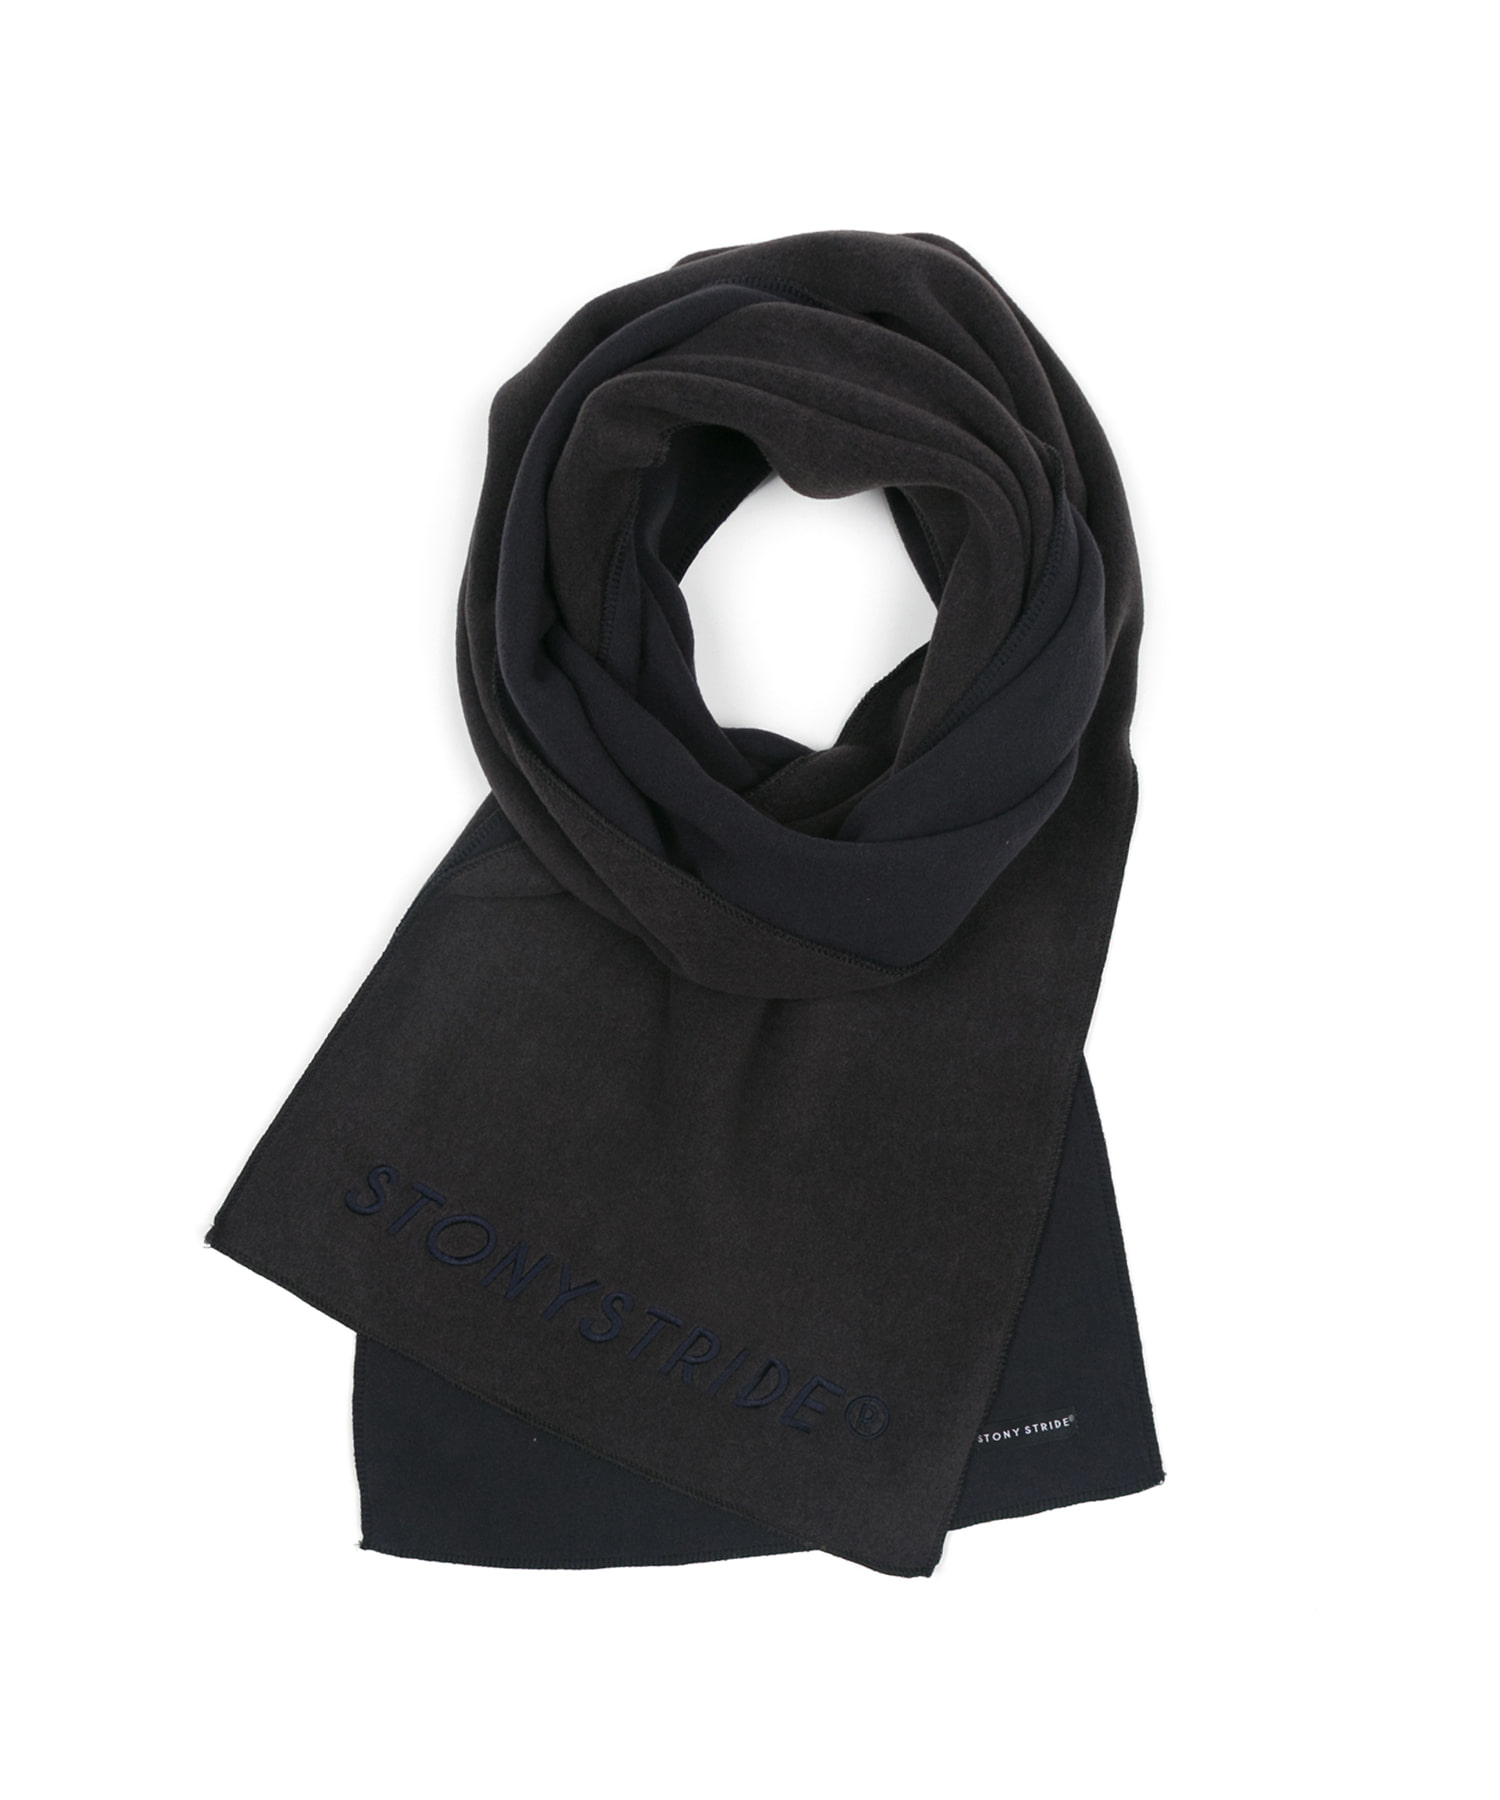 TWO TONE FLEECE MUFFLER - BLACK